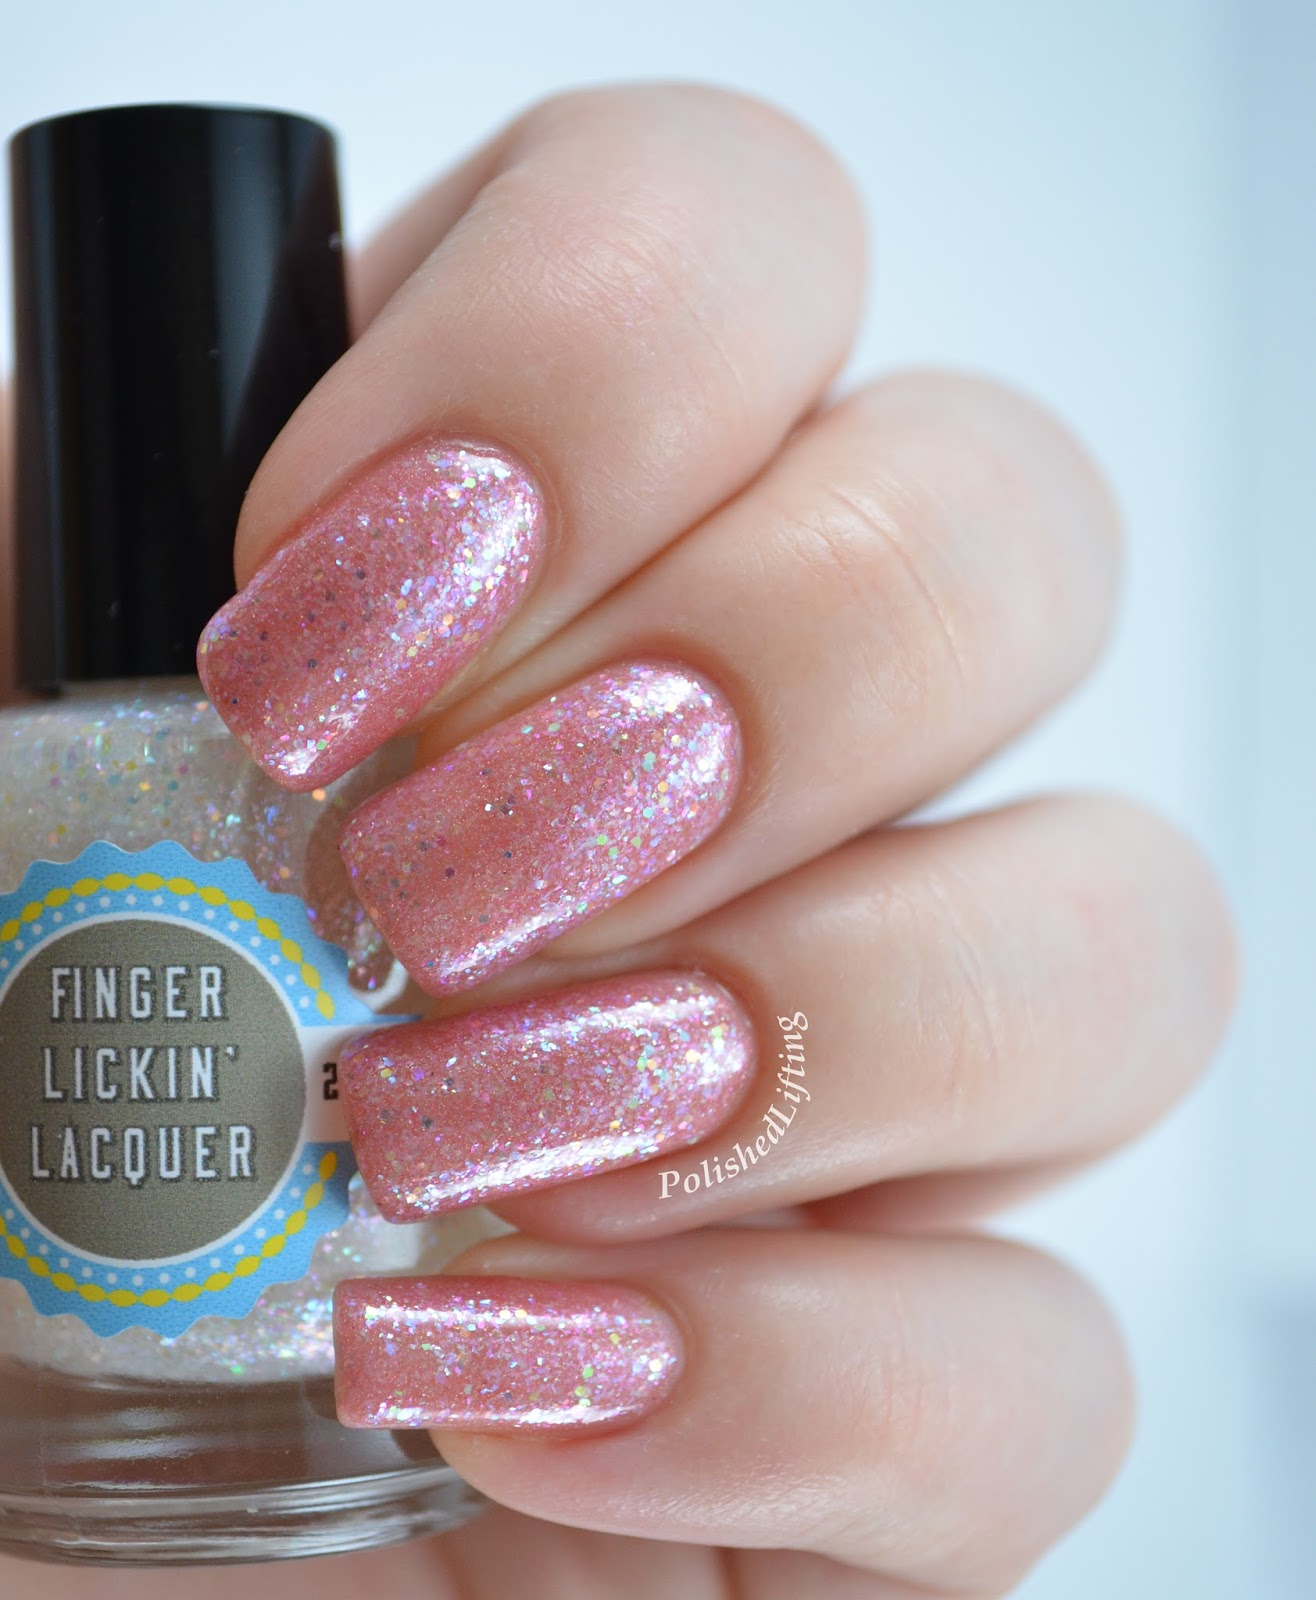 Finger Lickin' Lacquer Fight the Fairies Supernatural TV